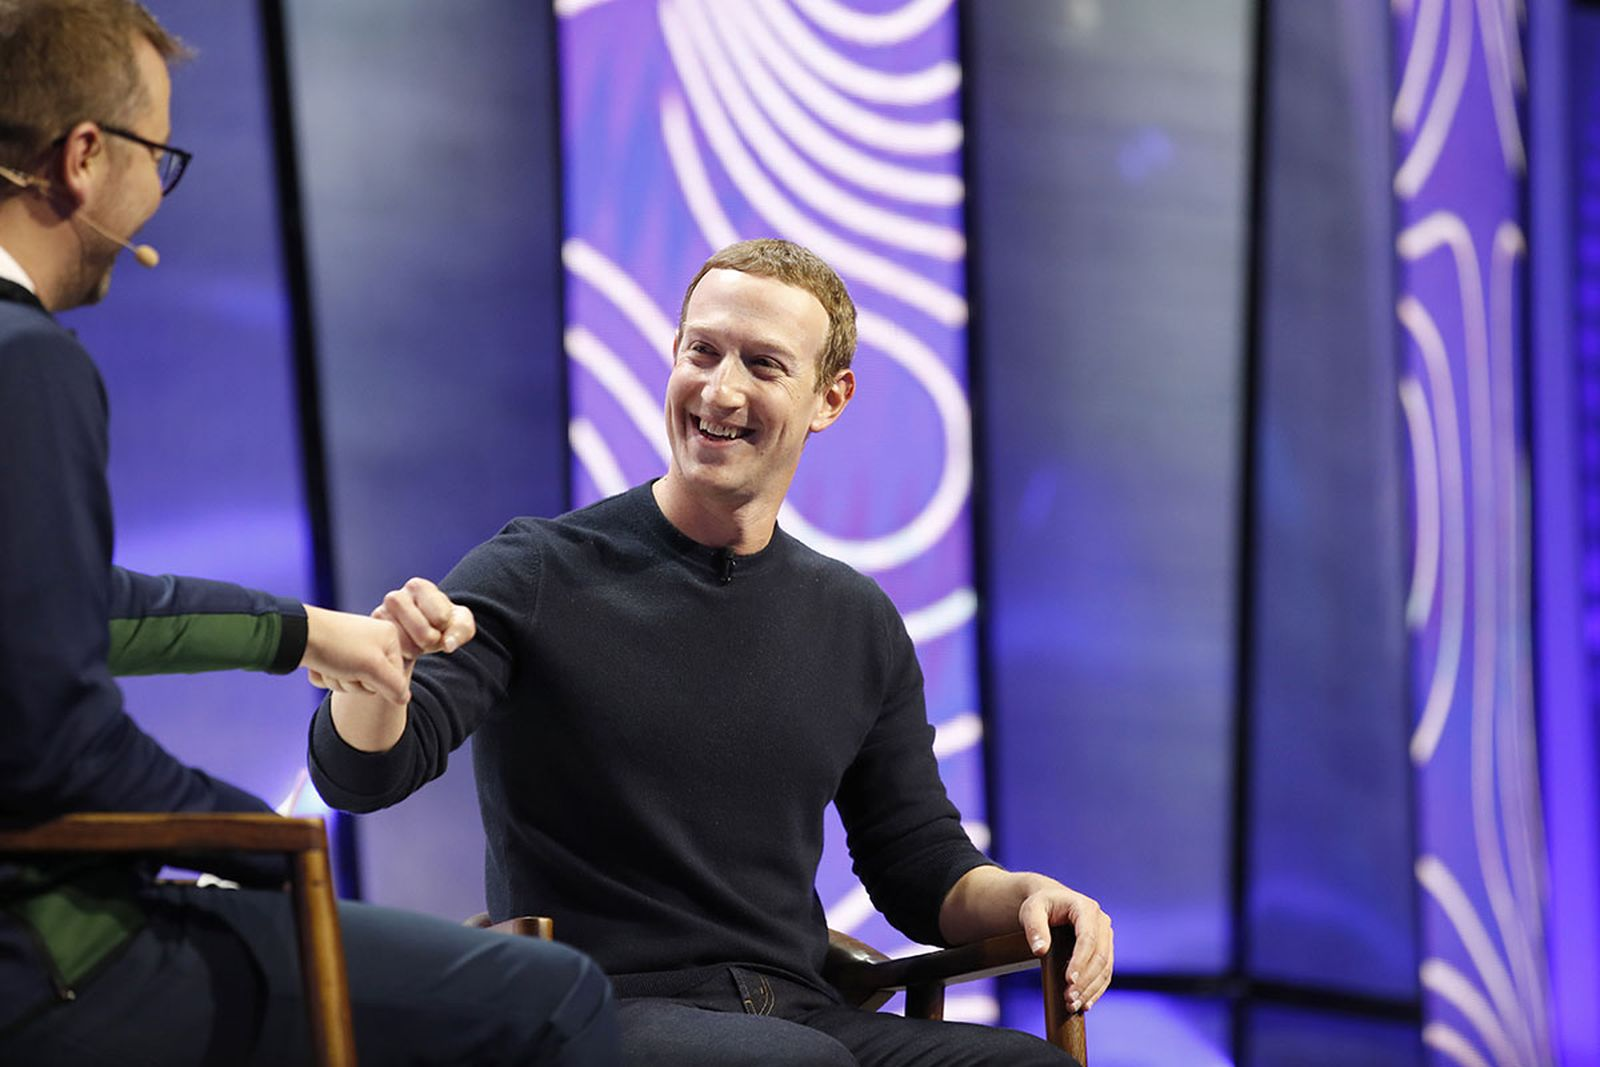 Facebook CEO Mark Zuckerberg & Key Speakers At The Silicon Slopes Summit